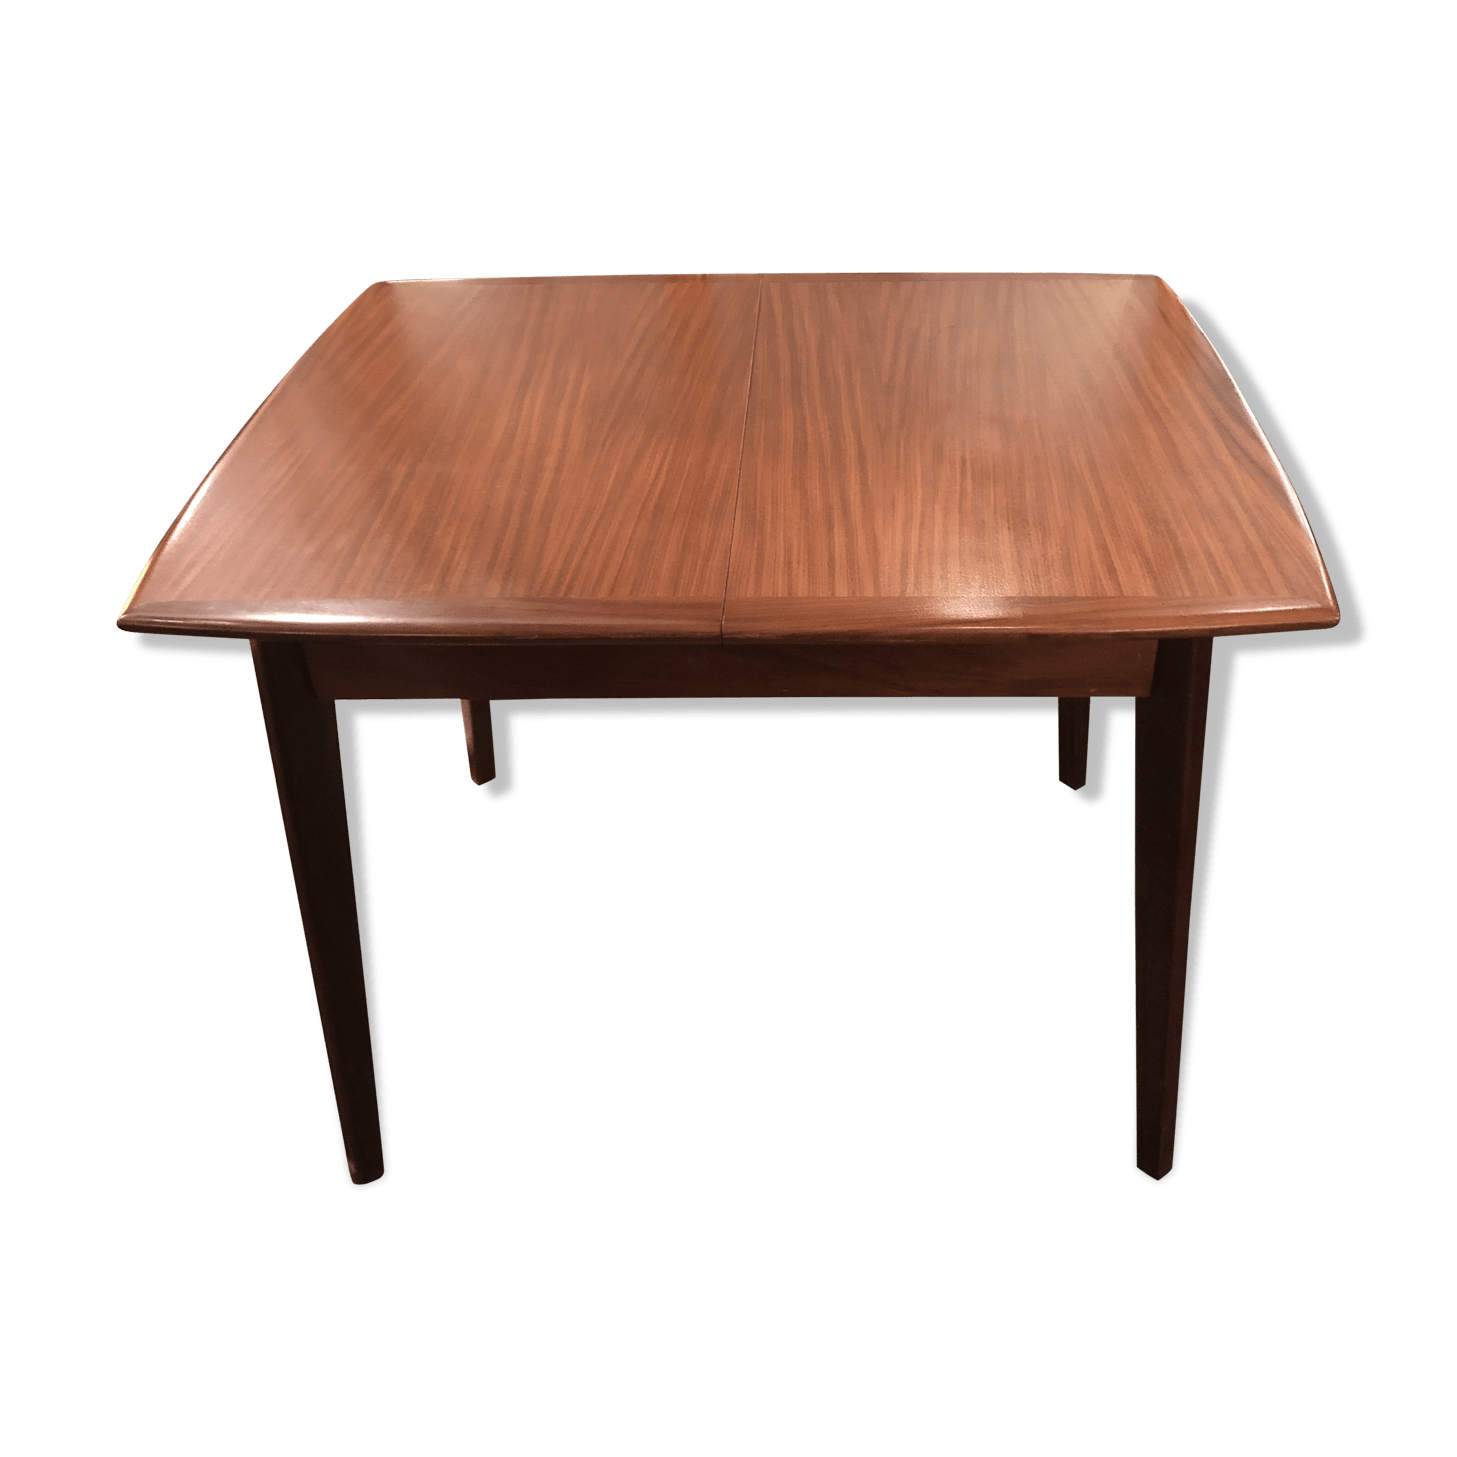 Table Ronde Scandinave Rallonge Table Ronde Scandinave Rallonge Idées De Design Websiteodit